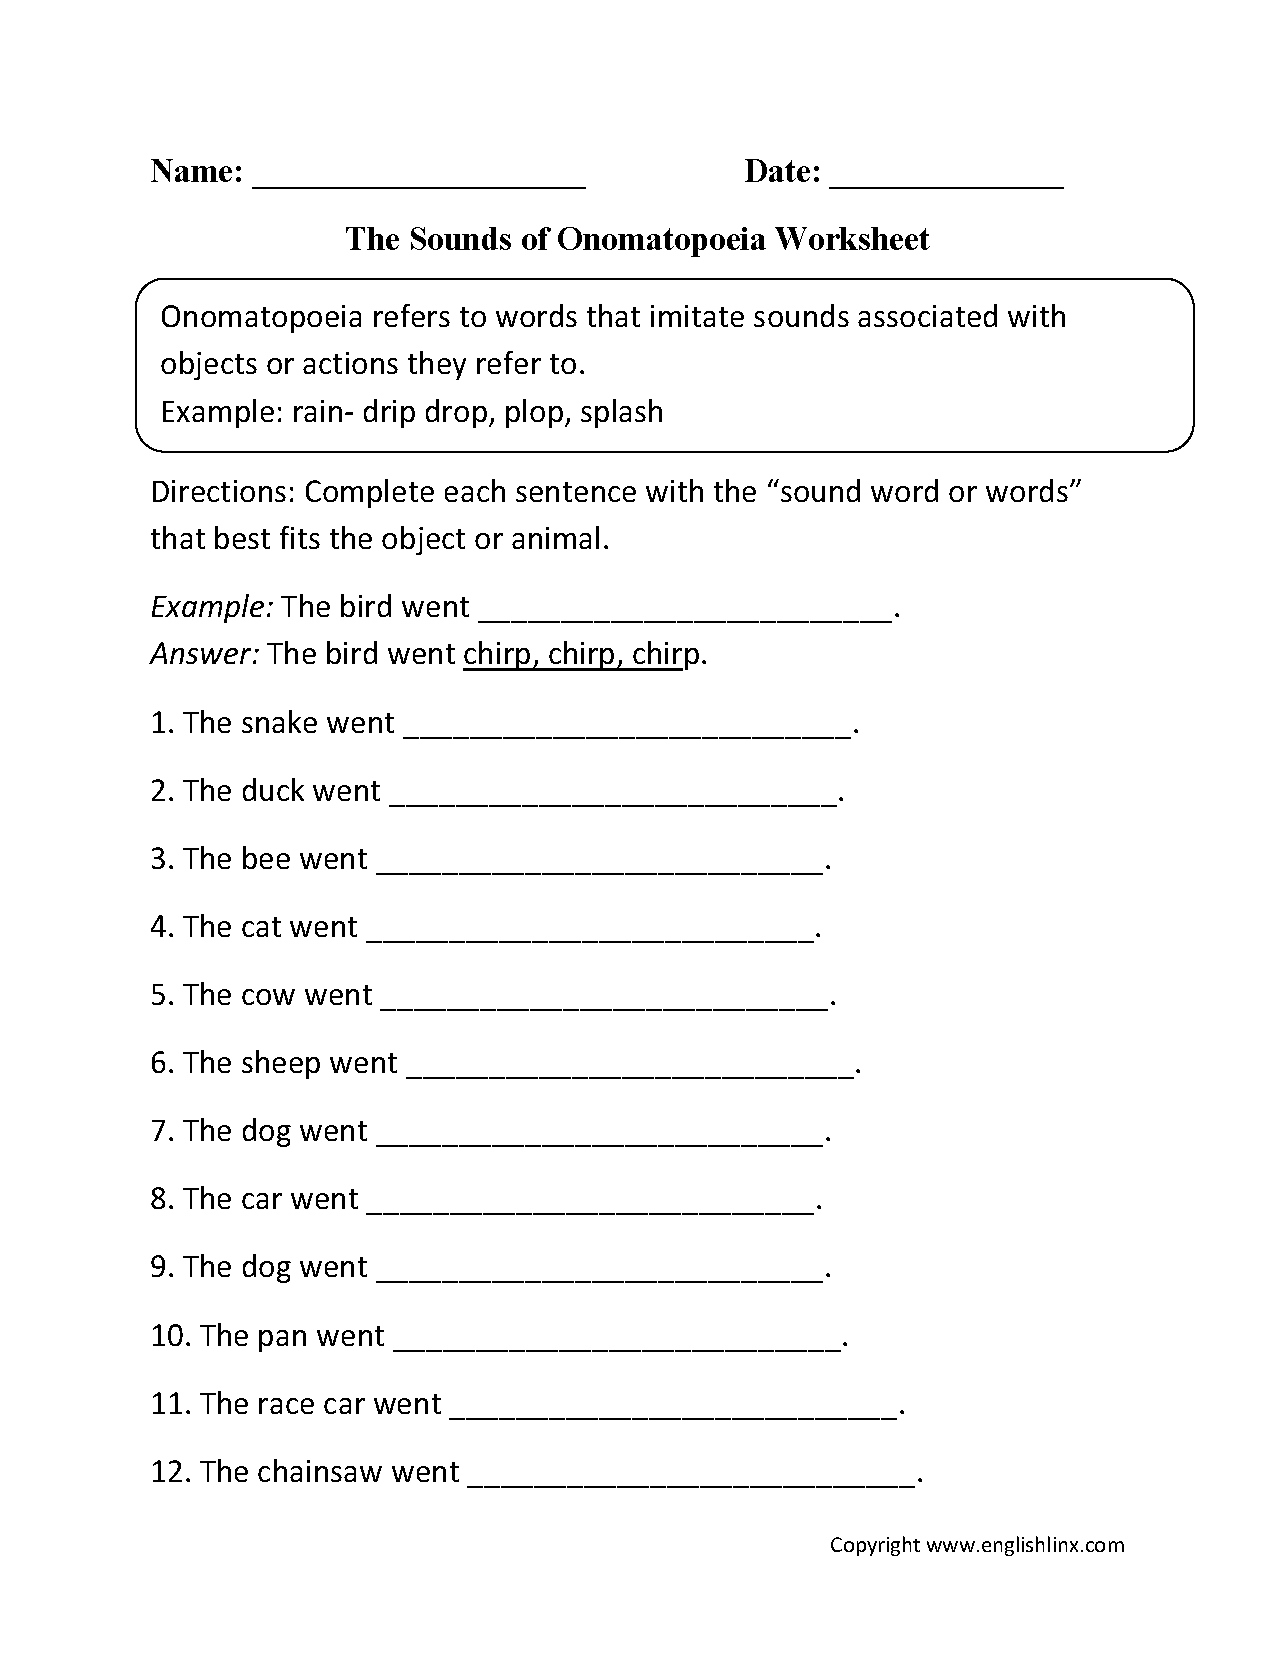 Aldiablosus  Splendid Englishlinxcom  Onomatopoeia Worksheets With Heavenly Worksheet With Amazing Fractions Worksheets Year  Also Australian Explorers Worksheets In Addition Range Mode Median Mean Worksheets And Grade Three English Worksheets As Well As Kumon Worksheet Answers Additionally Personal Hygiene Worksheets Ks From Englishlinxcom With Aldiablosus  Heavenly Englishlinxcom  Onomatopoeia Worksheets With Amazing Worksheet And Splendid Fractions Worksheets Year  Also Australian Explorers Worksheets In Addition Range Mode Median Mean Worksheets From Englishlinxcom